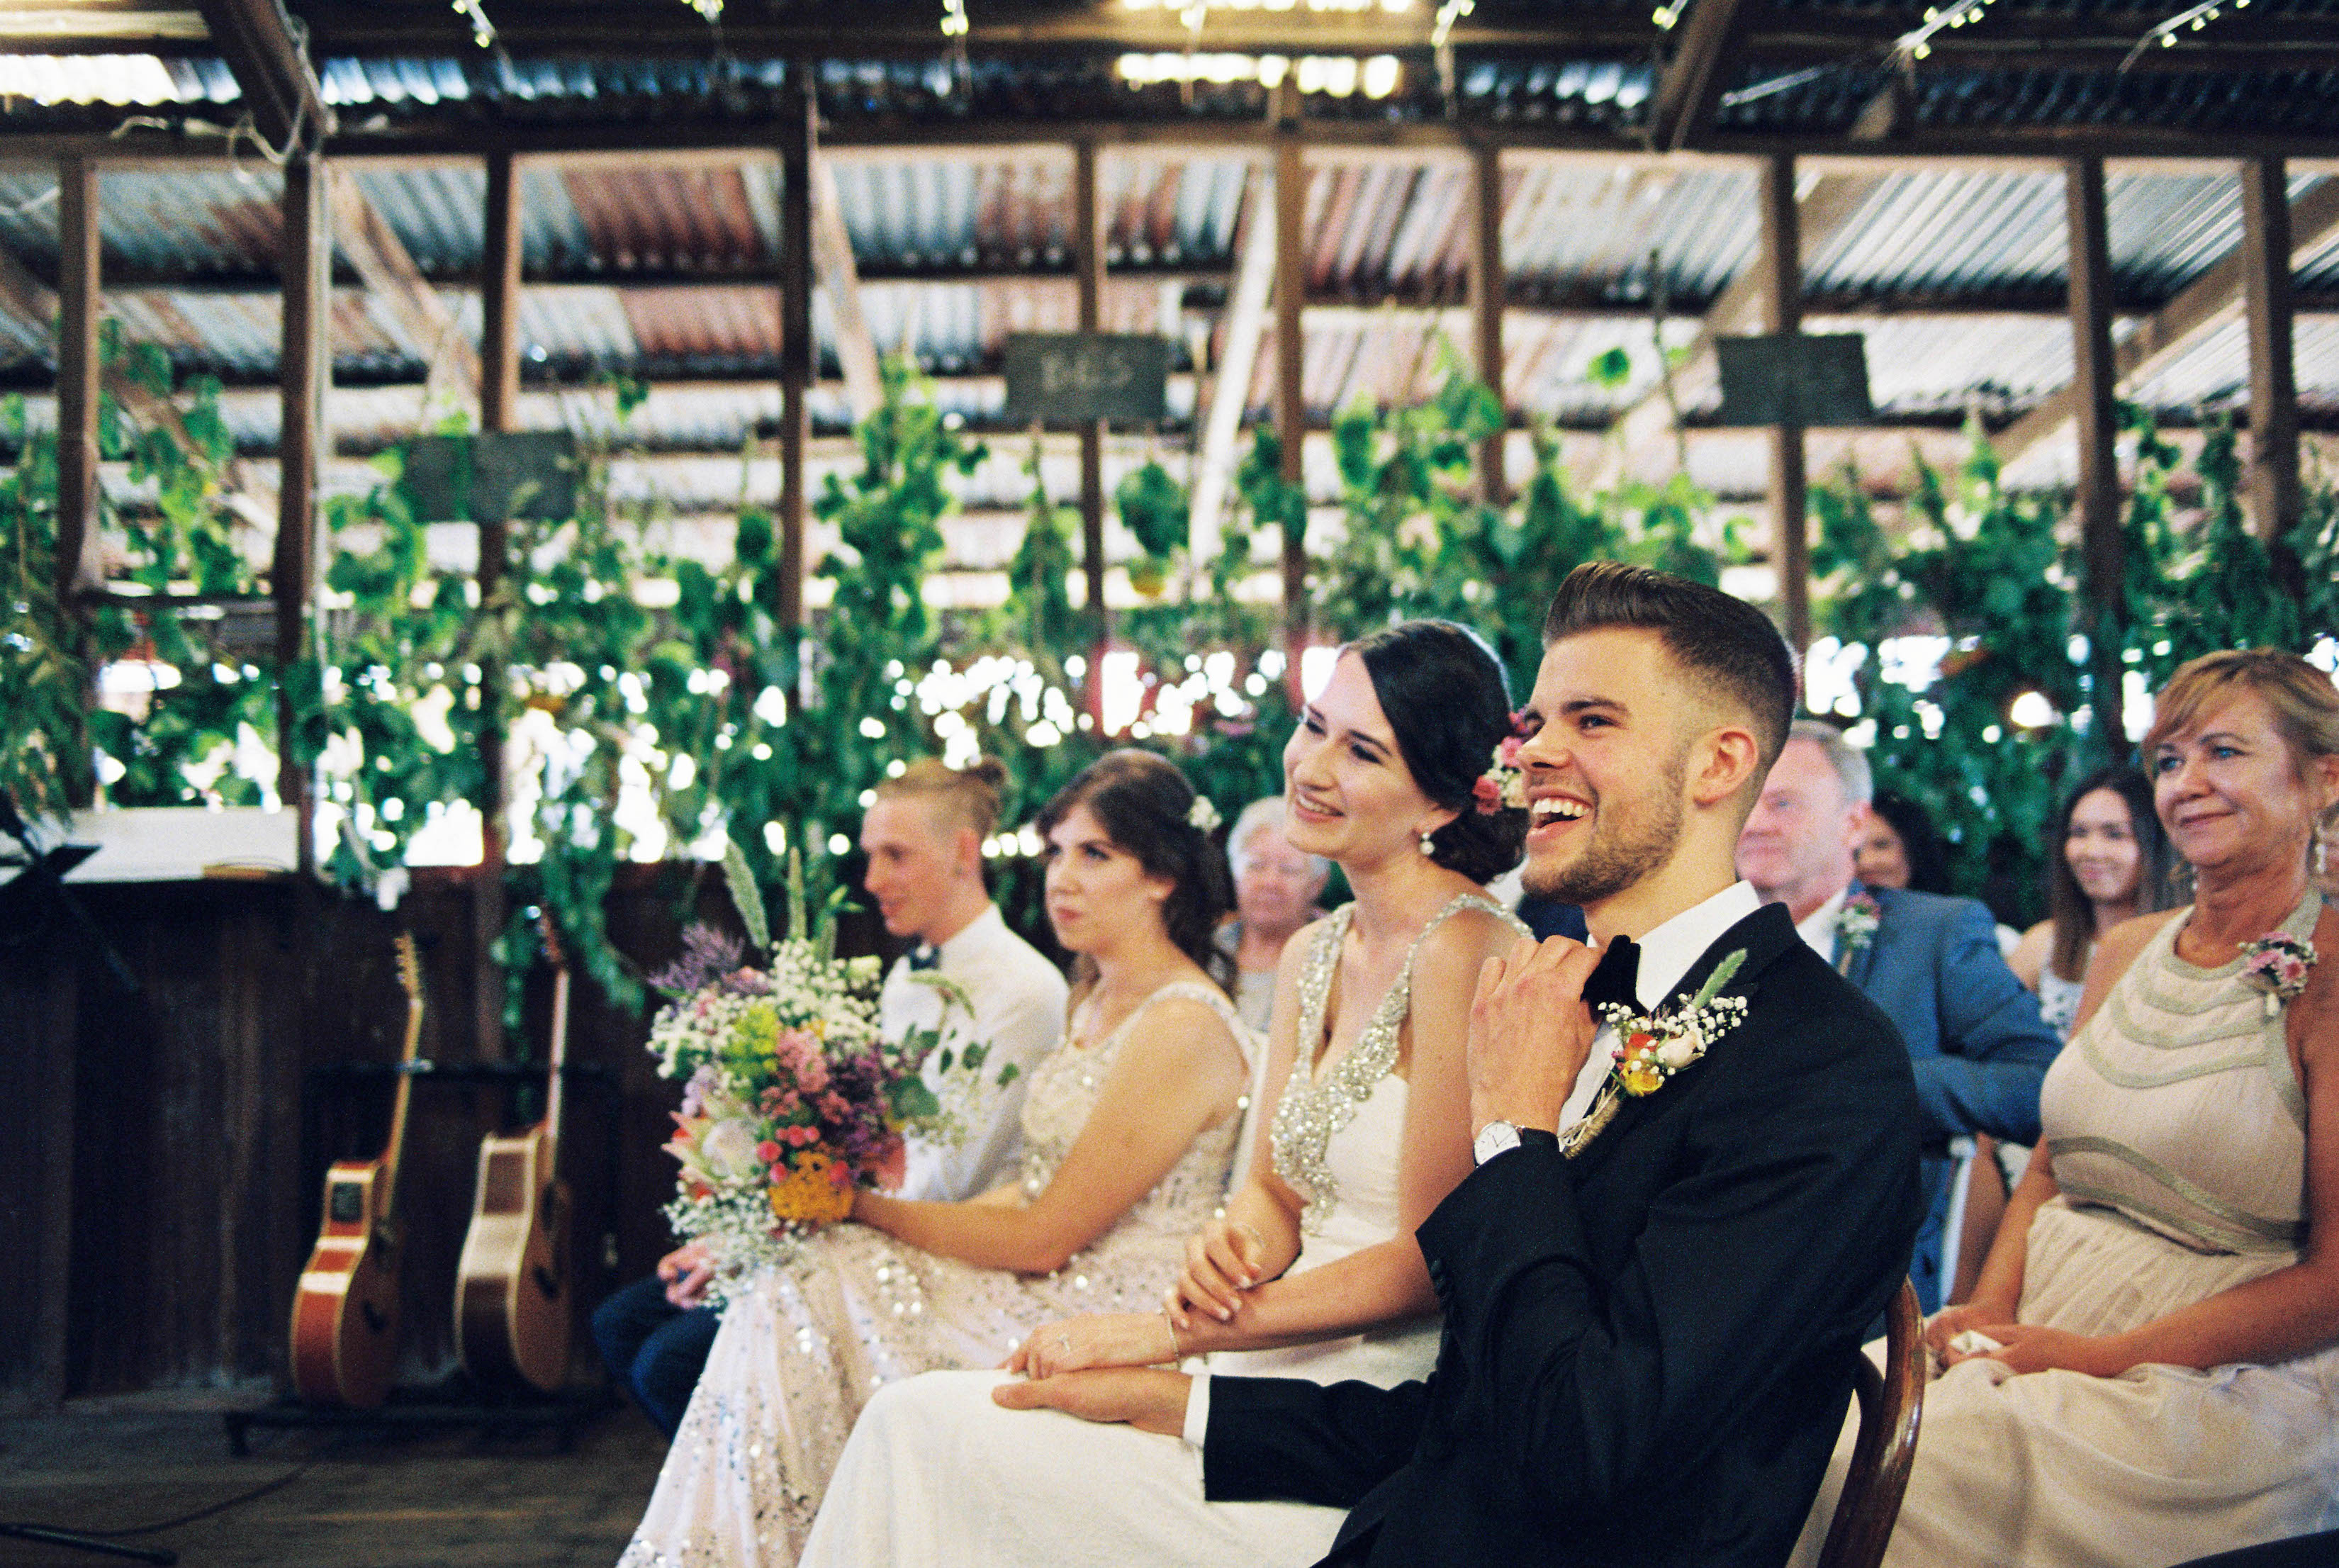 A photo of the groom and bride laughing during their natural, authentic Australian country wedding, photographed by Destination Wedding Photographer, Rhianna May